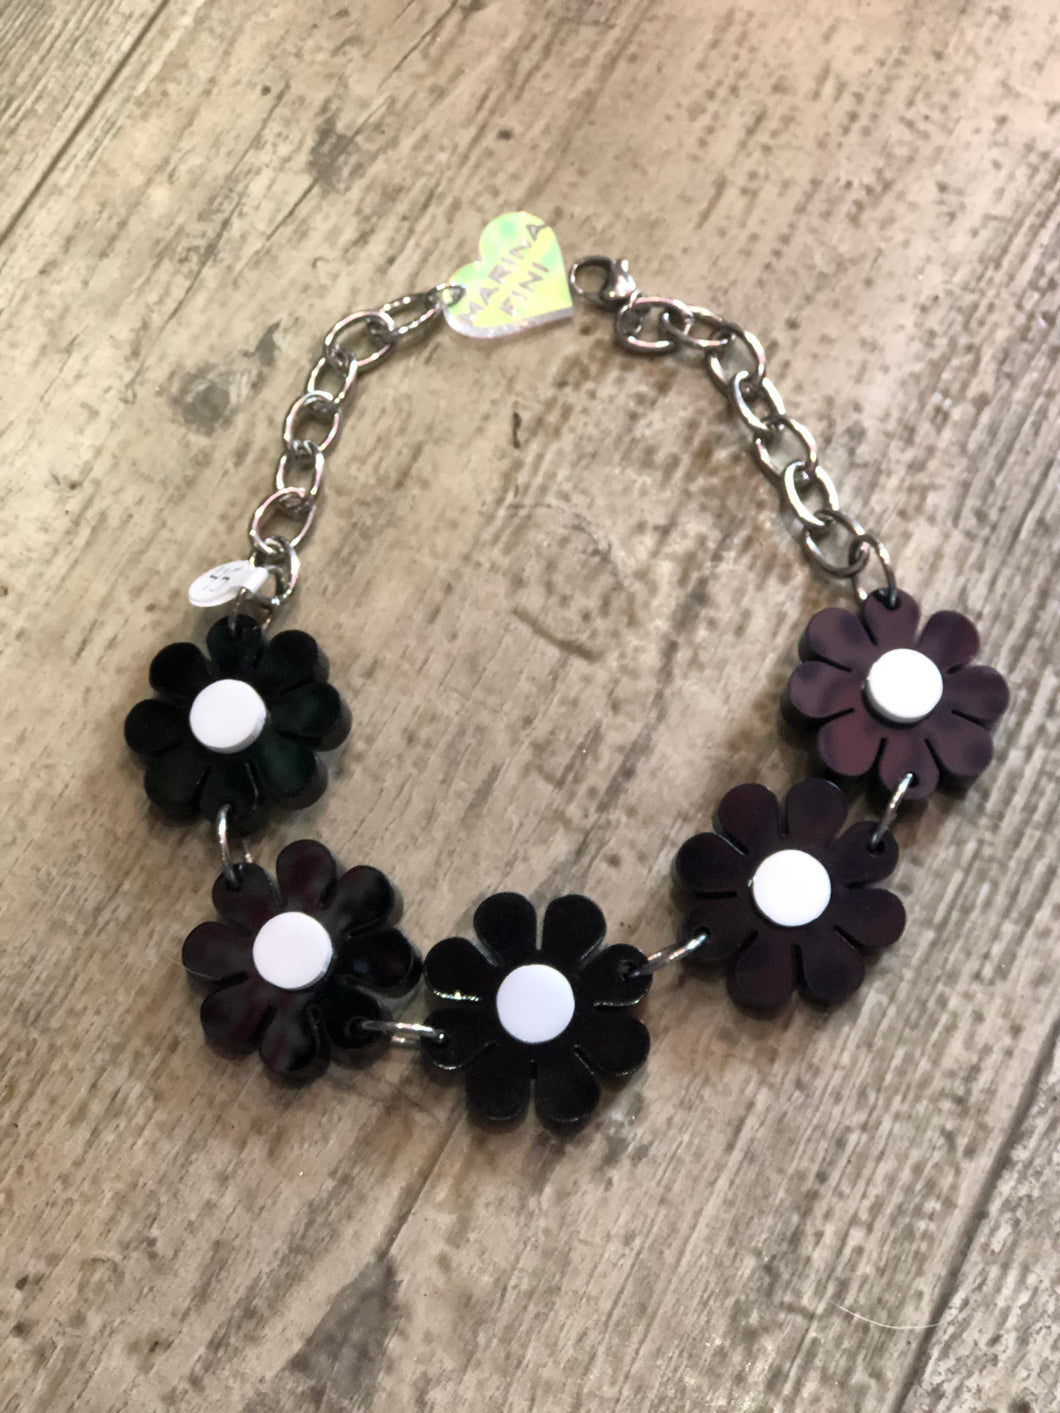 Black and White Flower Power Choker by Marina Fini | Necklaces - 80s 90s Retro Vintage Clothing | Spark Pretty